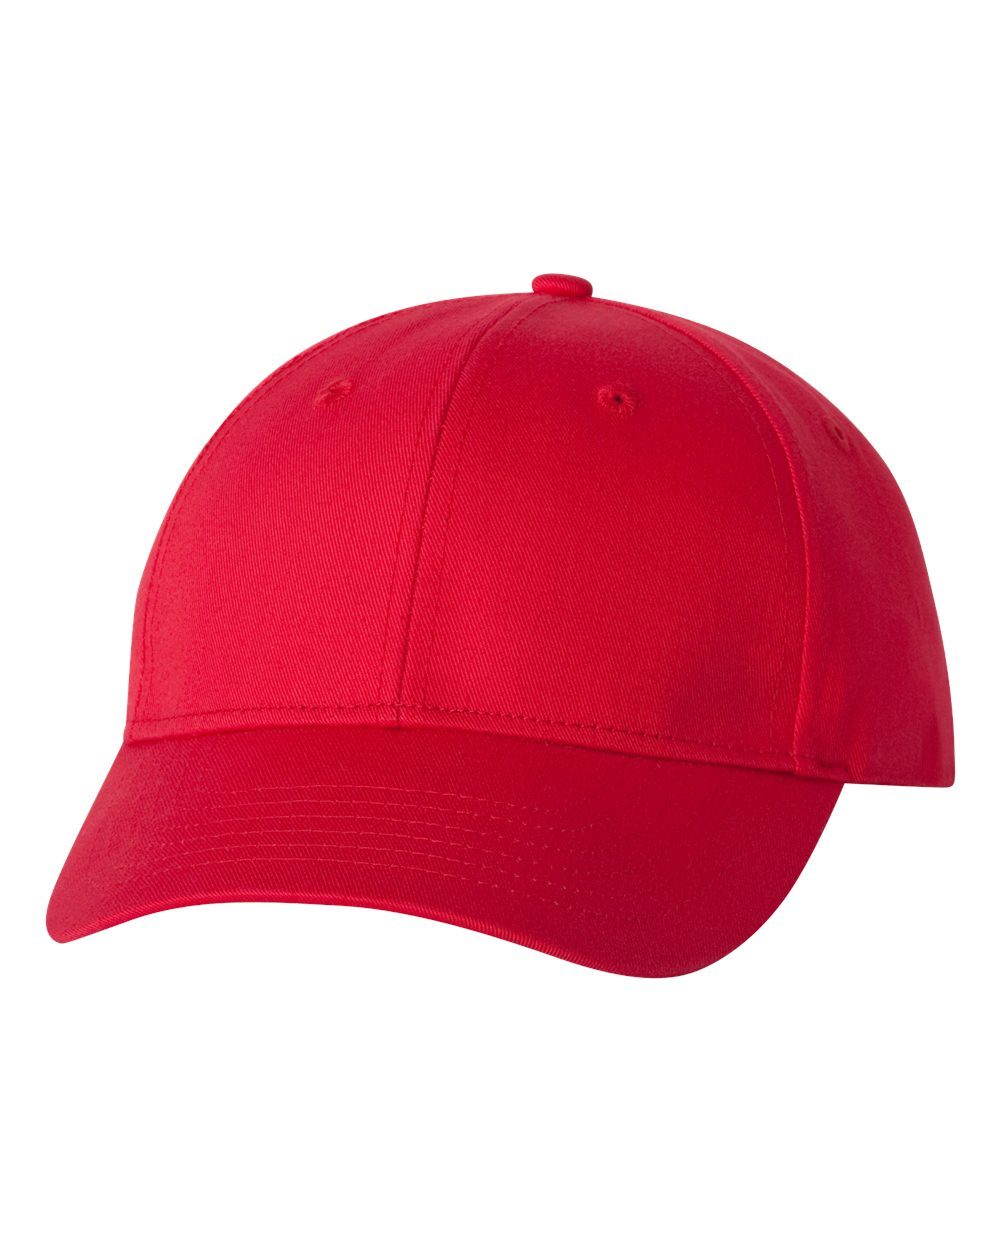 Valucap VC100 - Lightweight Twill Cap